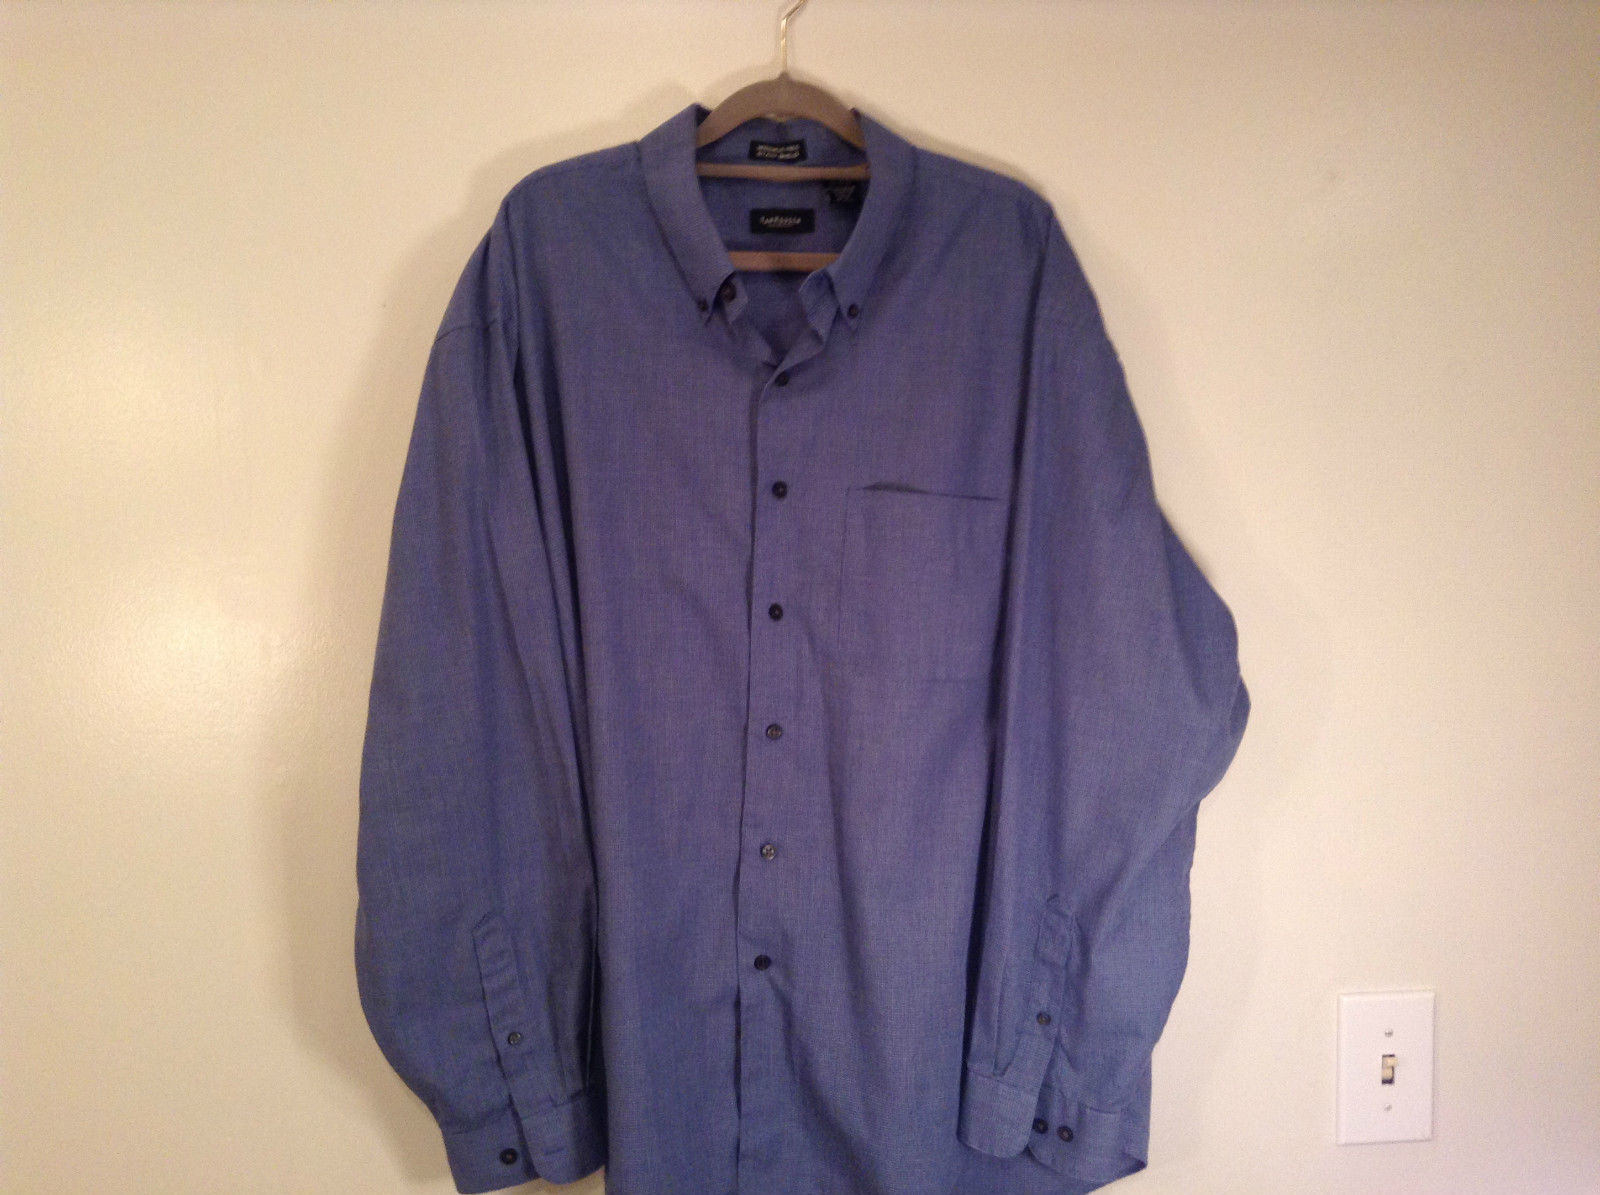 Blue Plaid Long Sleeve Van Hensen Wrinkle Free Stain Shield Shirt Size XL